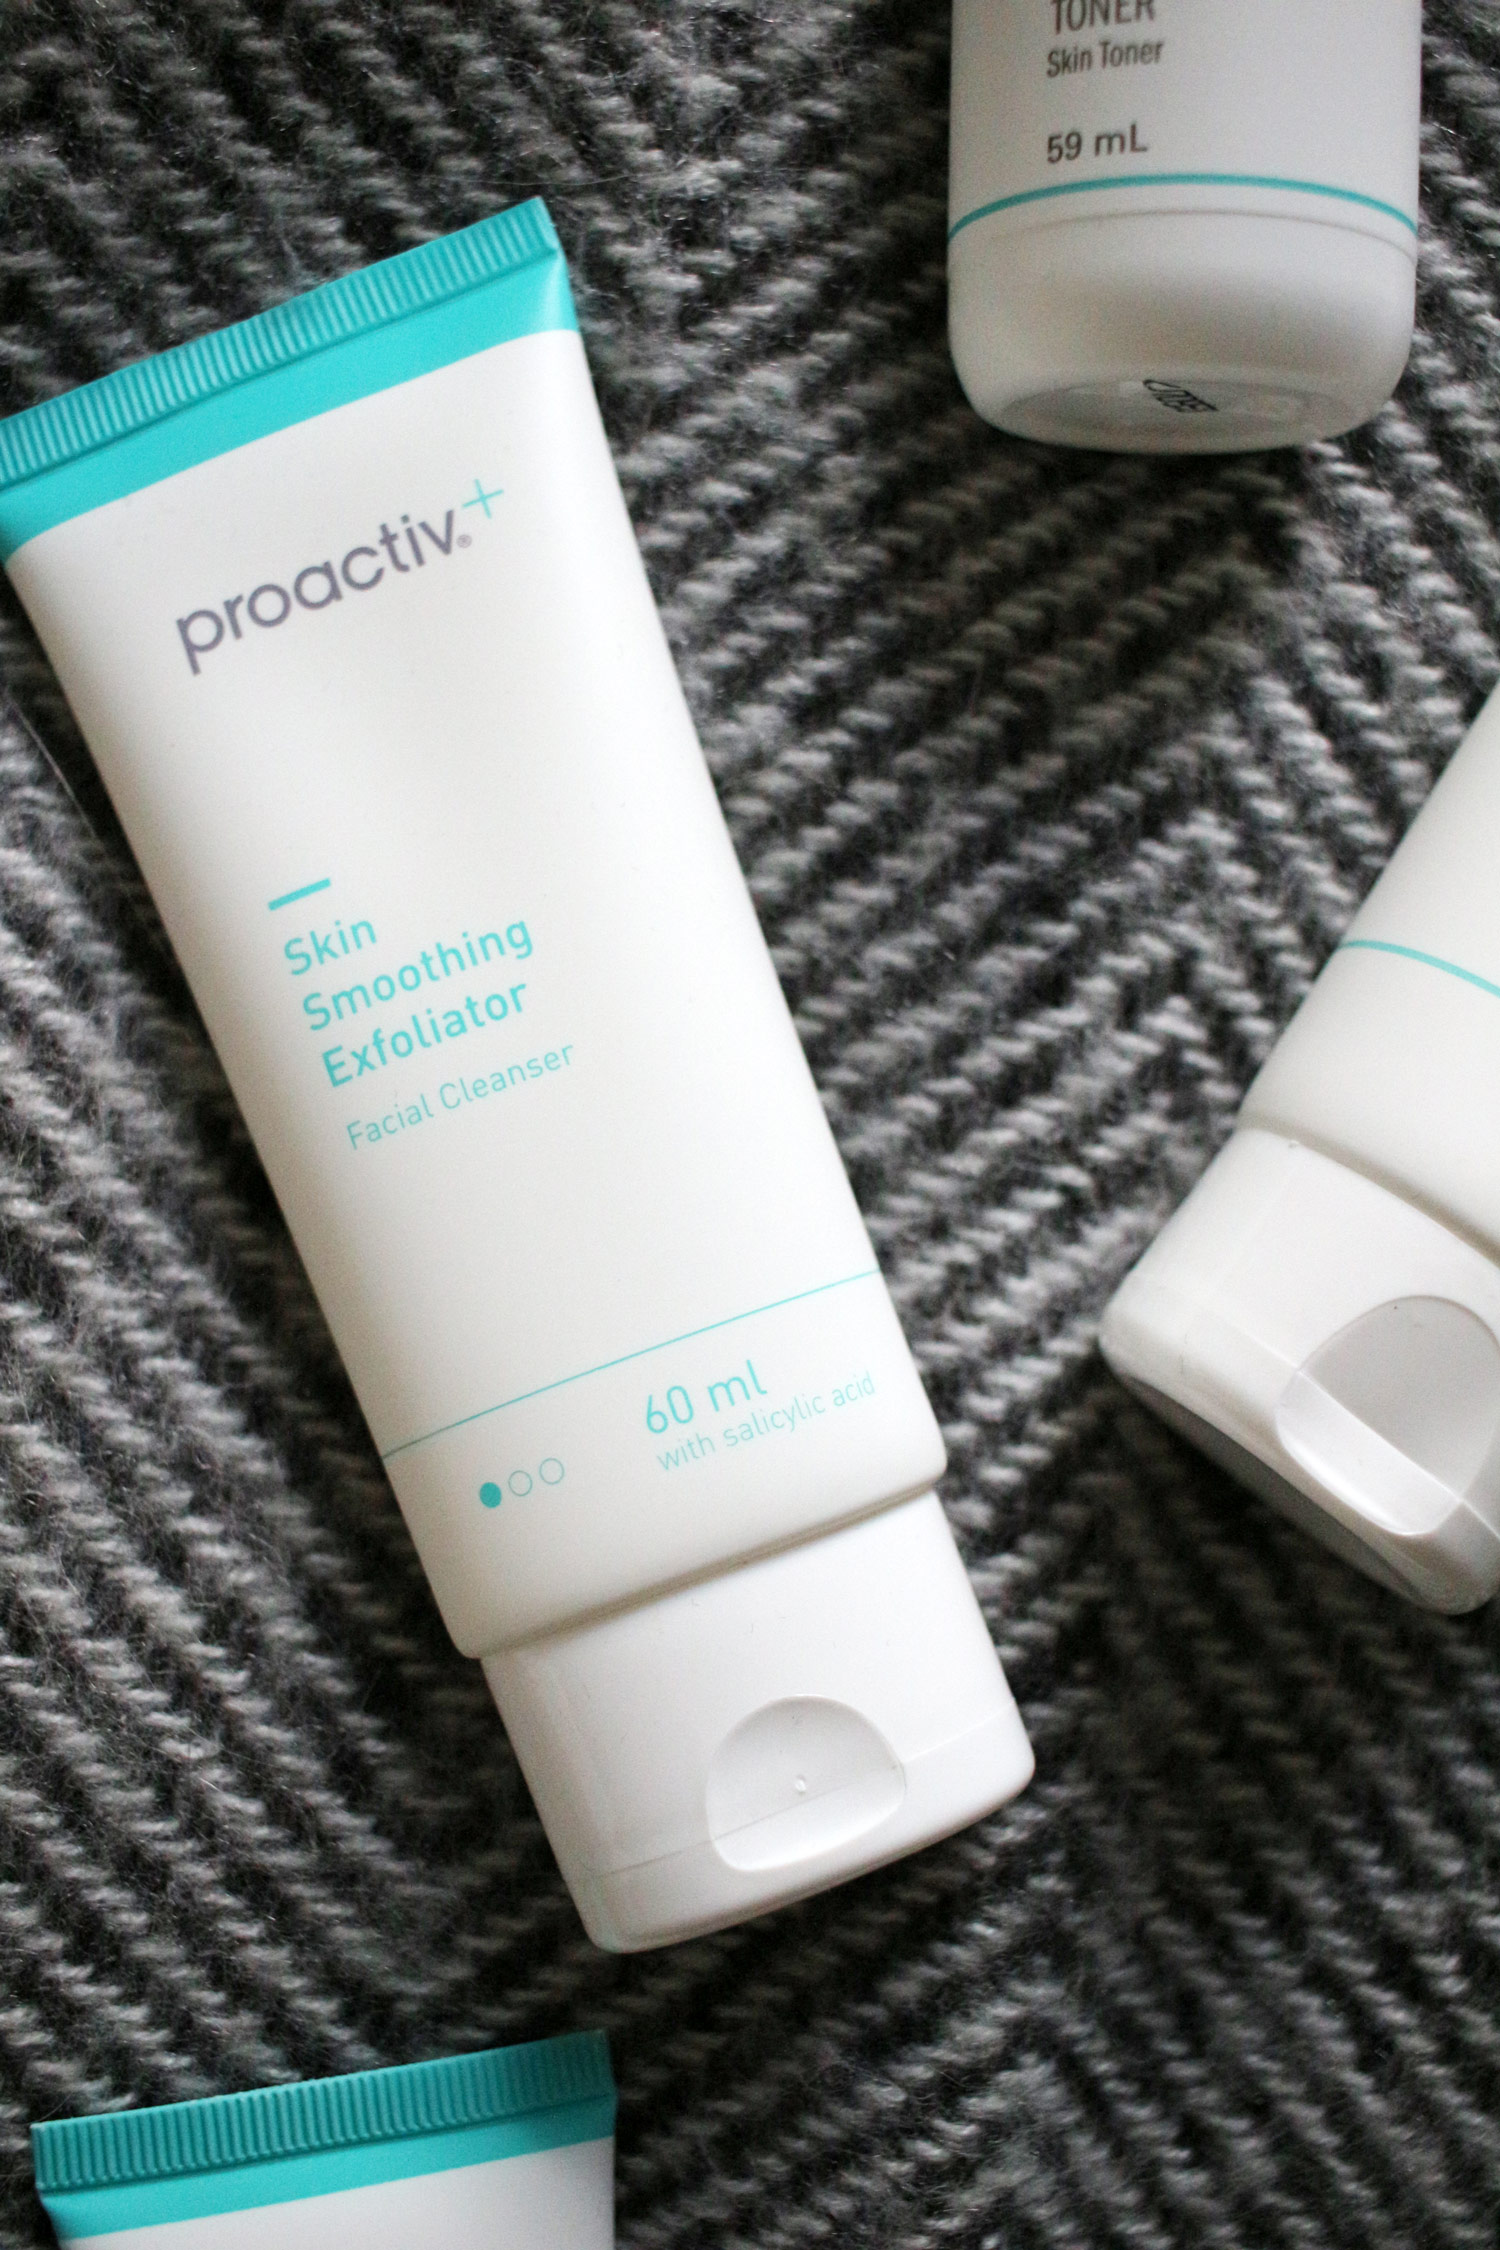 proactiv-skincare-review-after-3